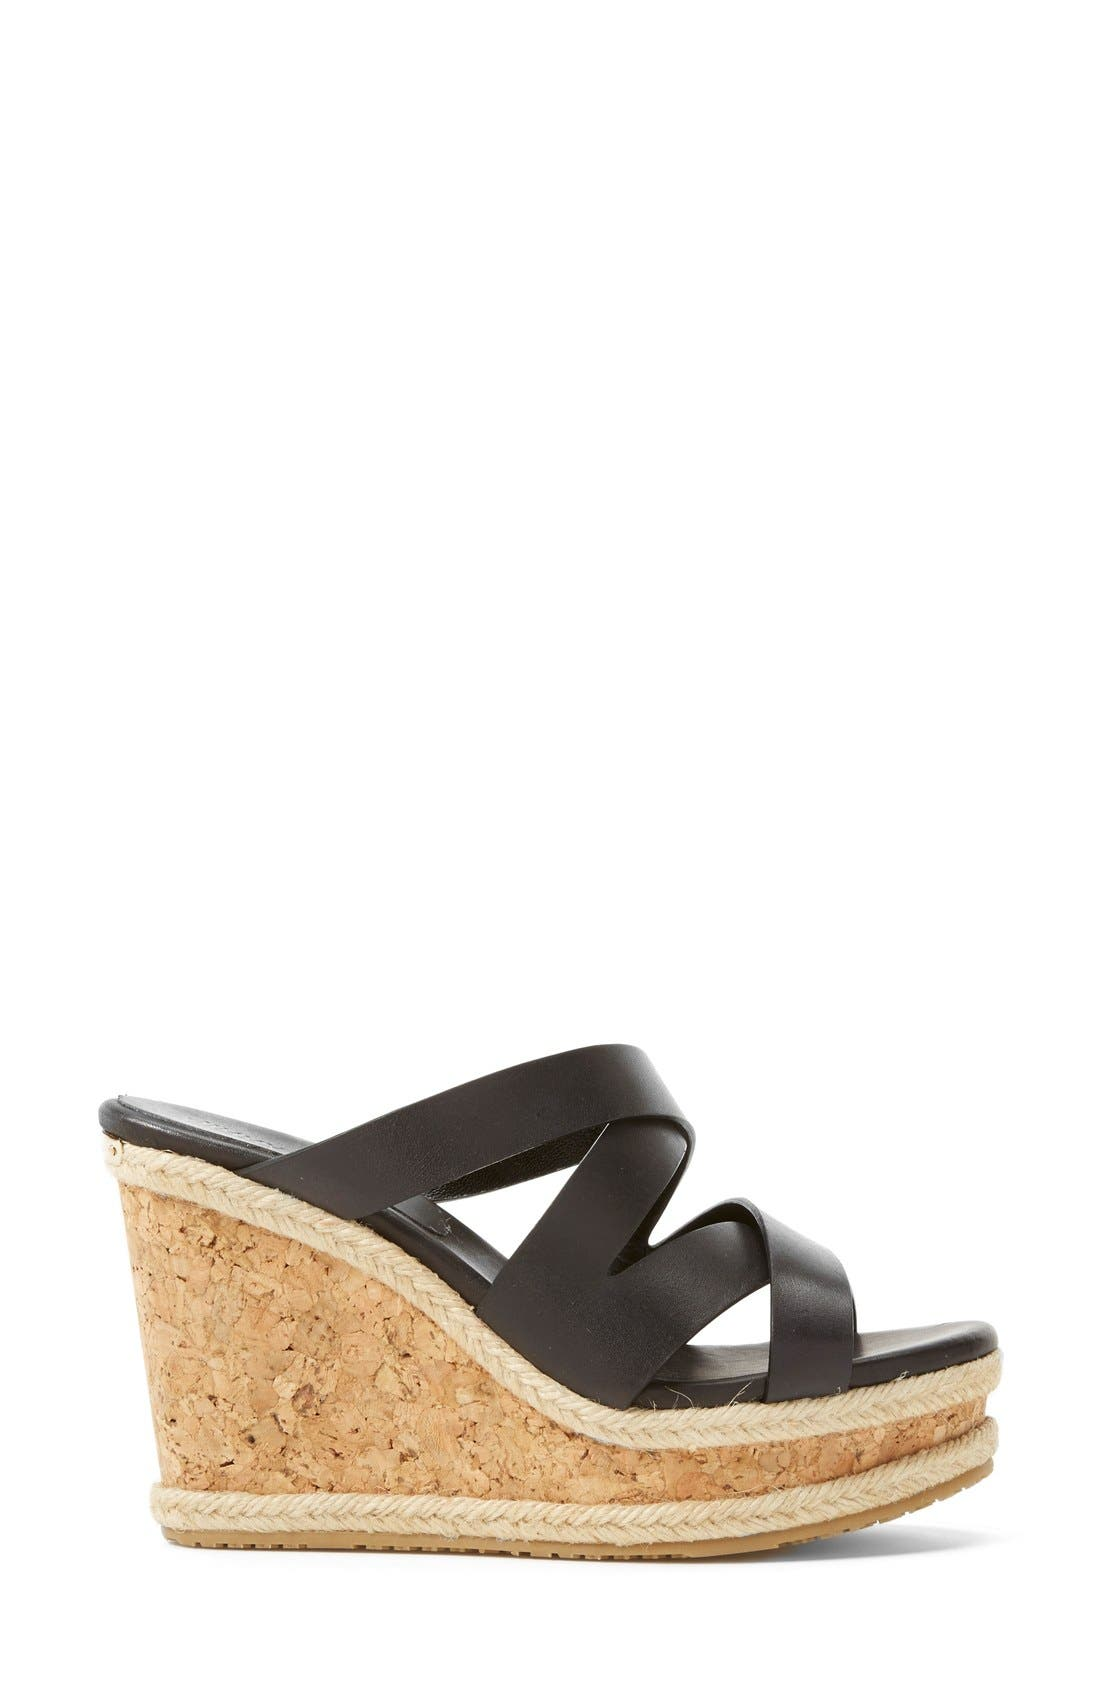 Alternate Image 4  - Jimmy Choo 'Prisma' Leather Wedge Sandal (Women)